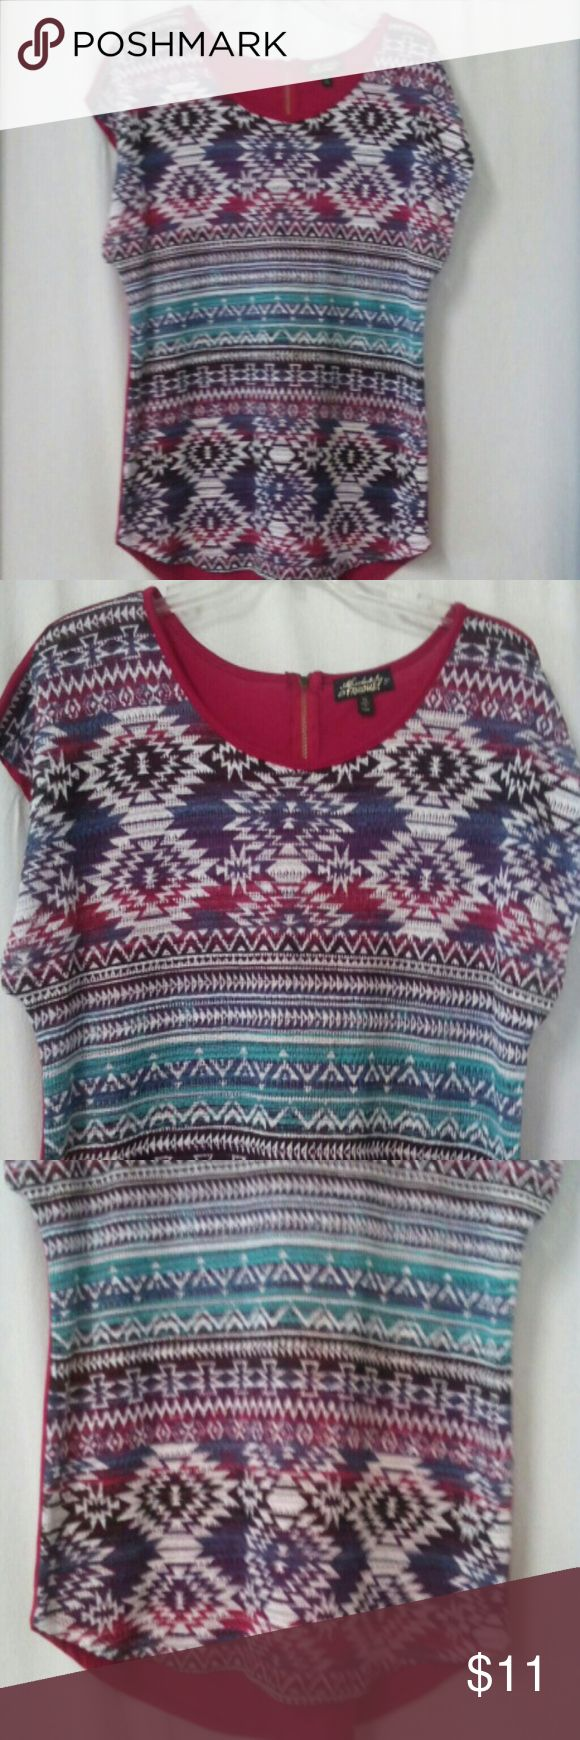 """Absolutely Famous Women's Size XL Top Barely worn, turquoise, white, burgundy, purple, black and navy Aztec pattern, burgundy back of Top,  sleeveless, zipper at the back of the neck, rayon and polyester, chest 44"""", length 27"""" in front and 29 1/2"""" in back Absolutely Famous Tops"""